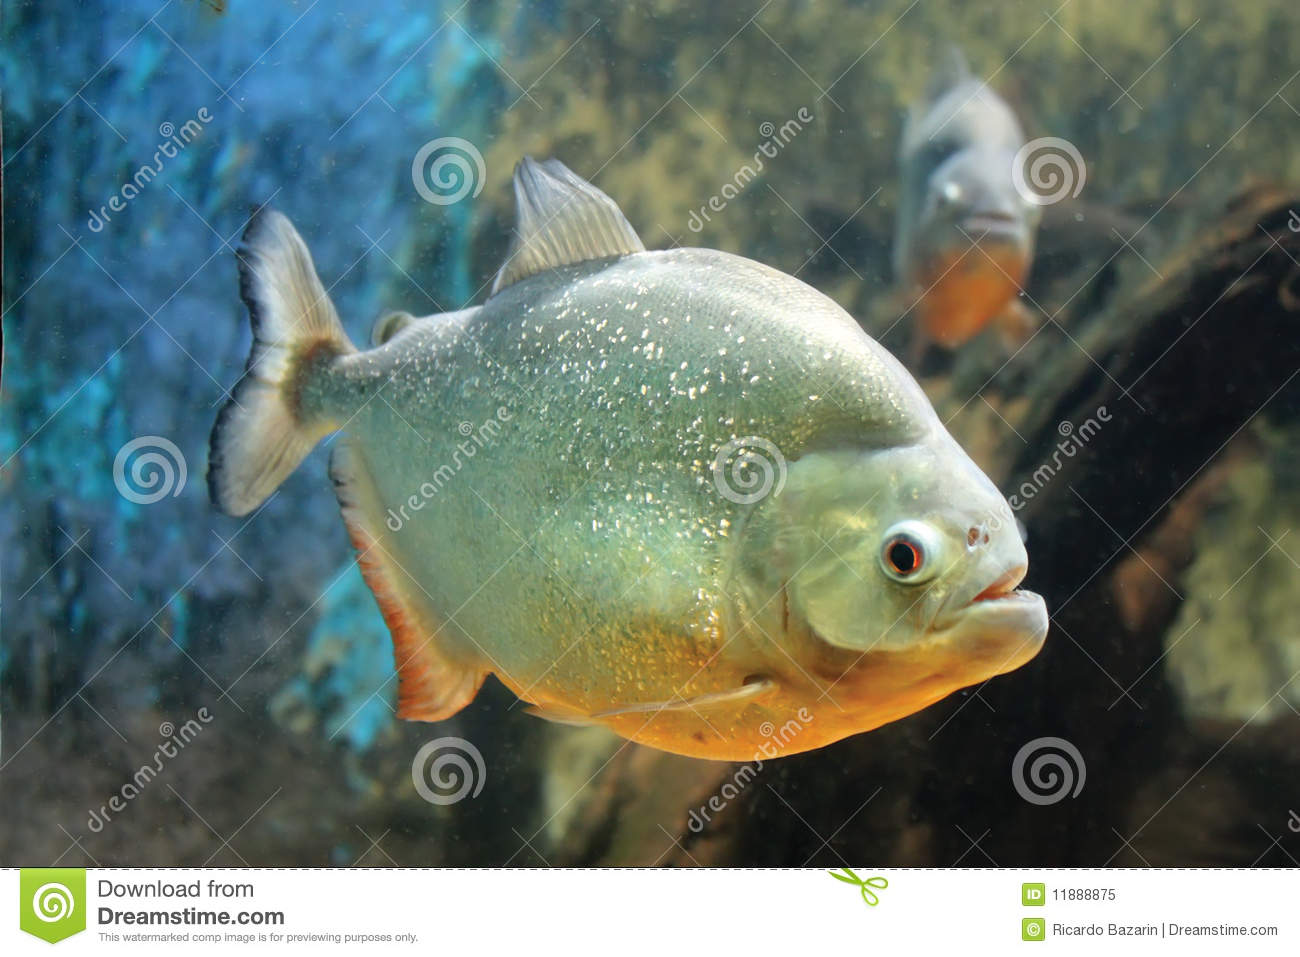 Piranha fish stock image image of fish life under for Photos of fish